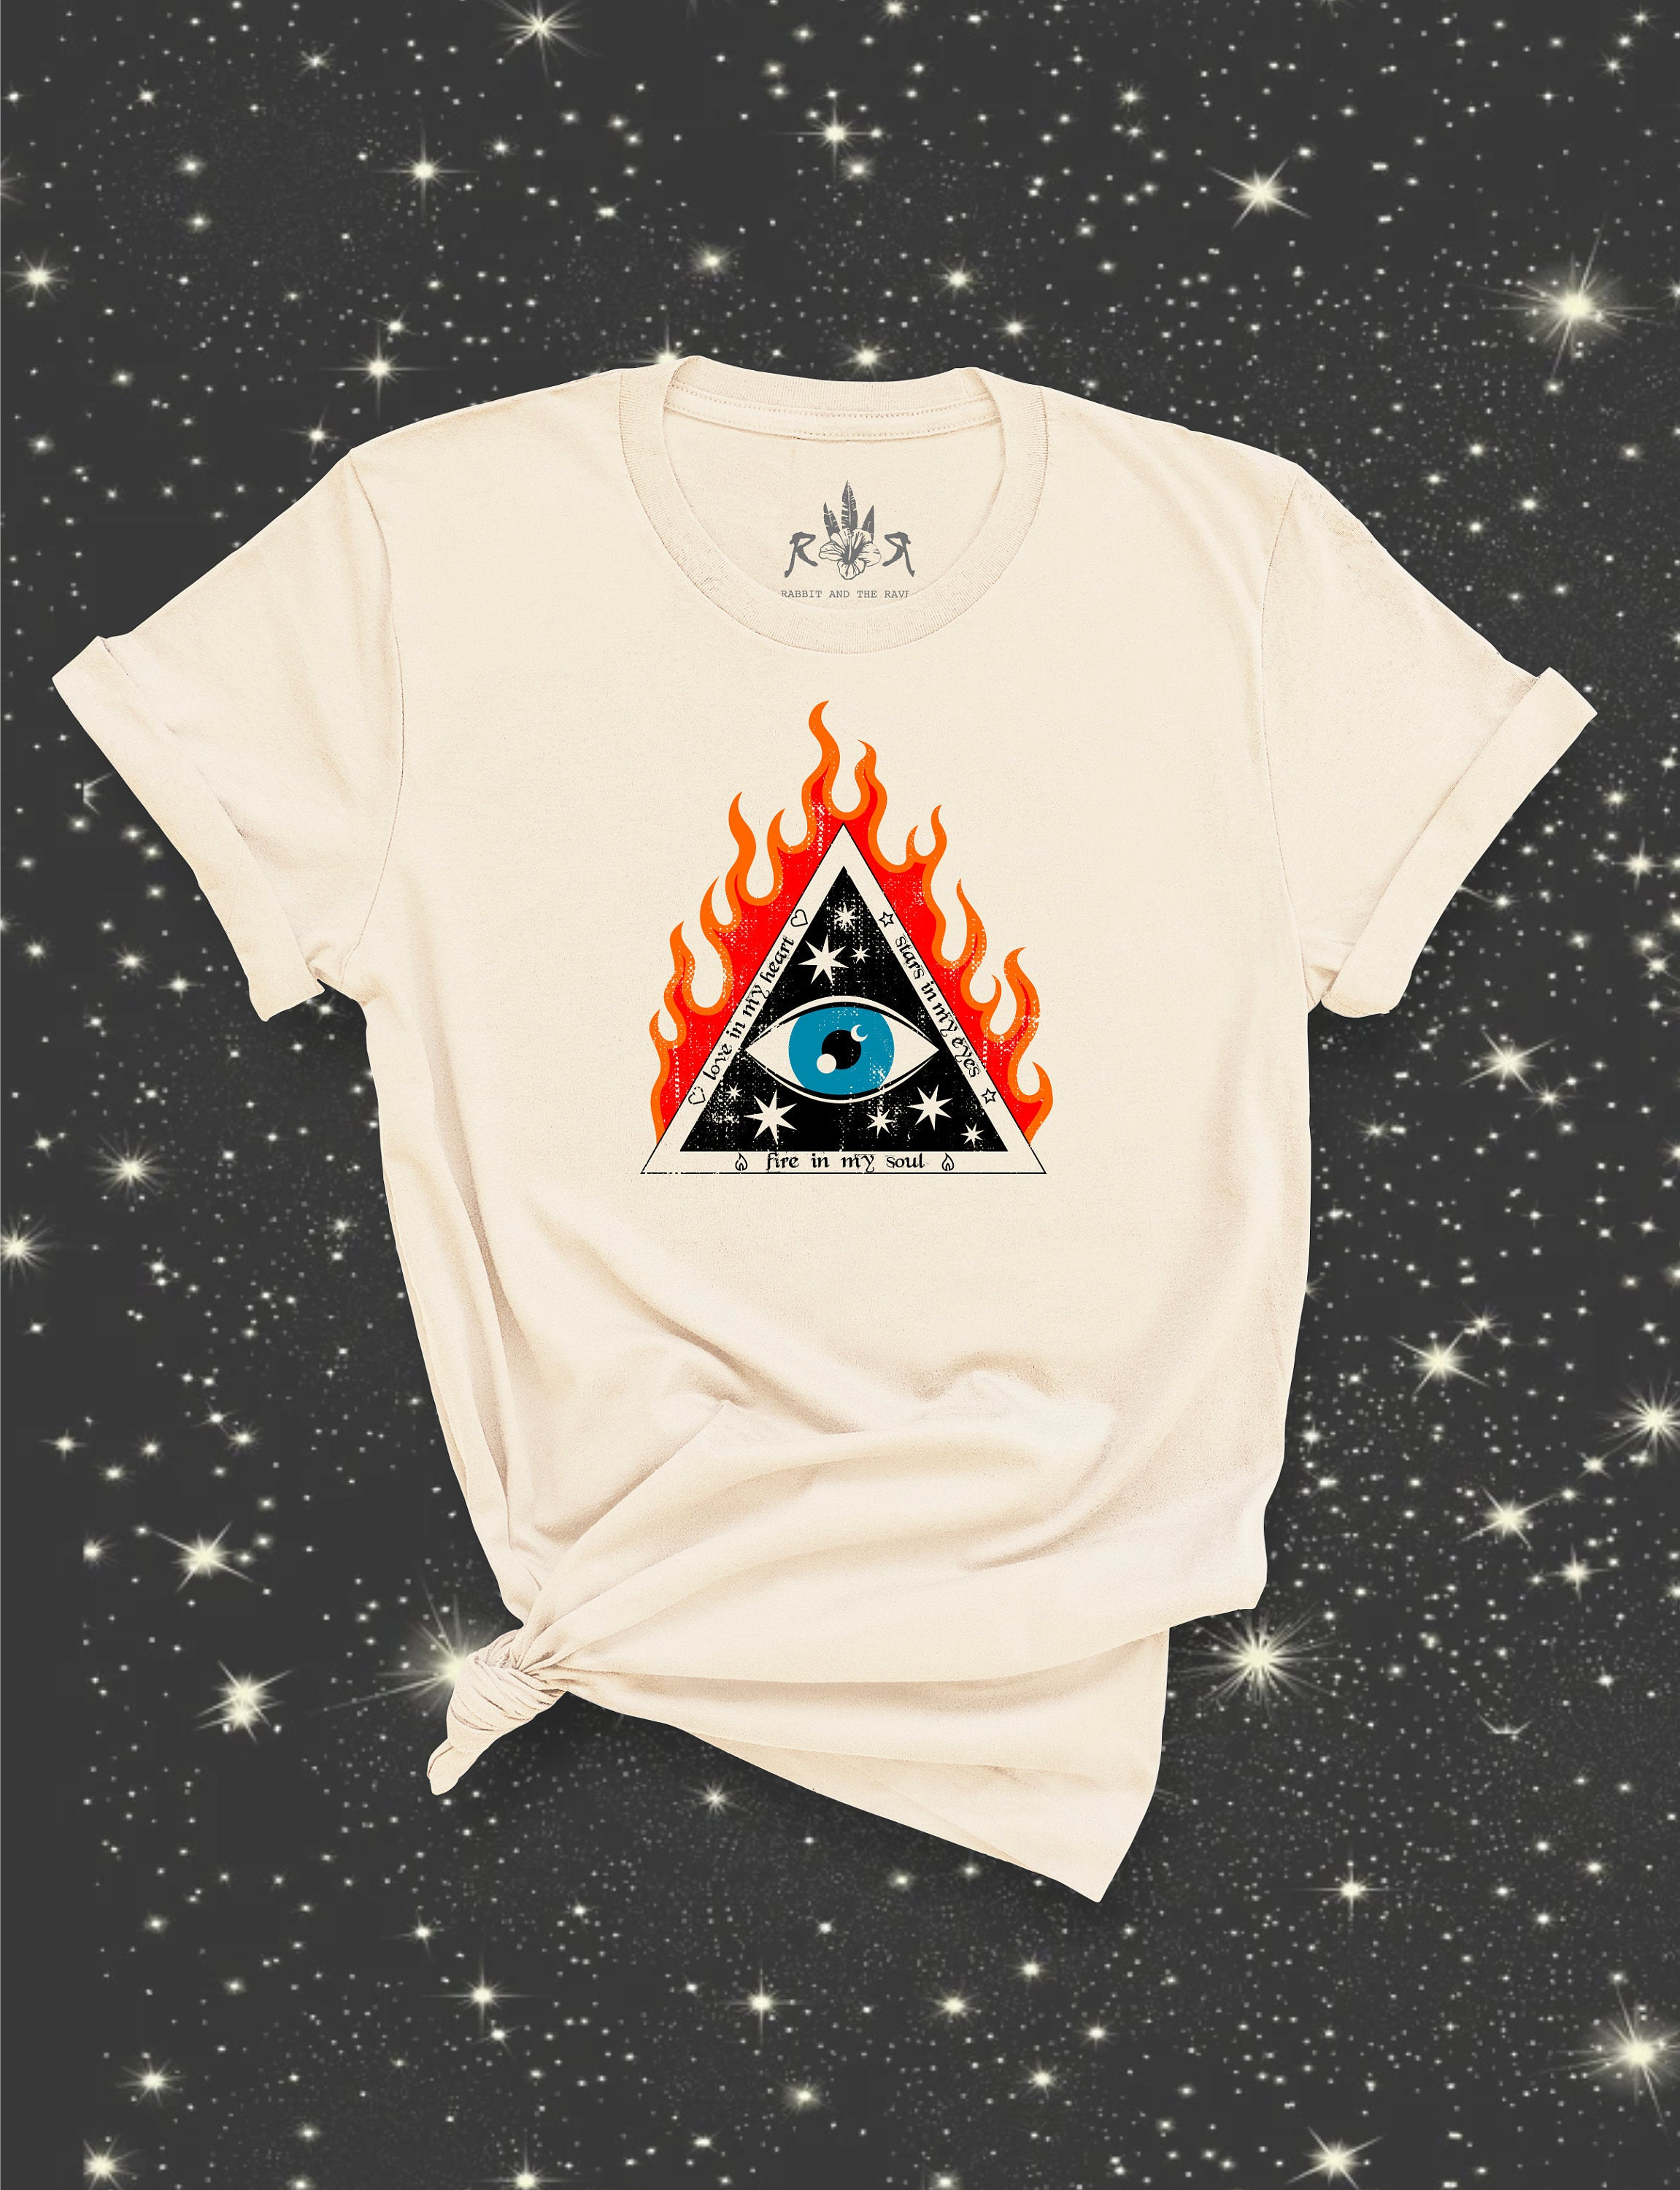 all seeing eye graphic tee women's rock n roll witchy clothing tarot illuminati evil eye tee eye of providence enlightened pyramid shirt